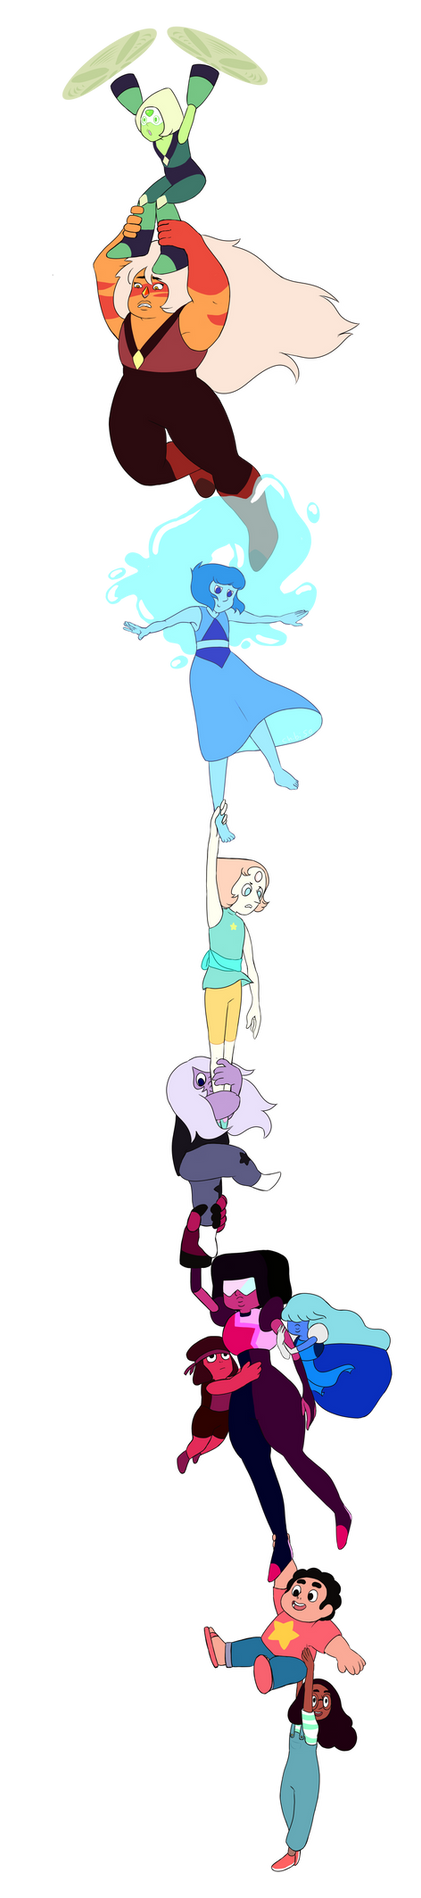 All aboard the pericopter by ChibiSo